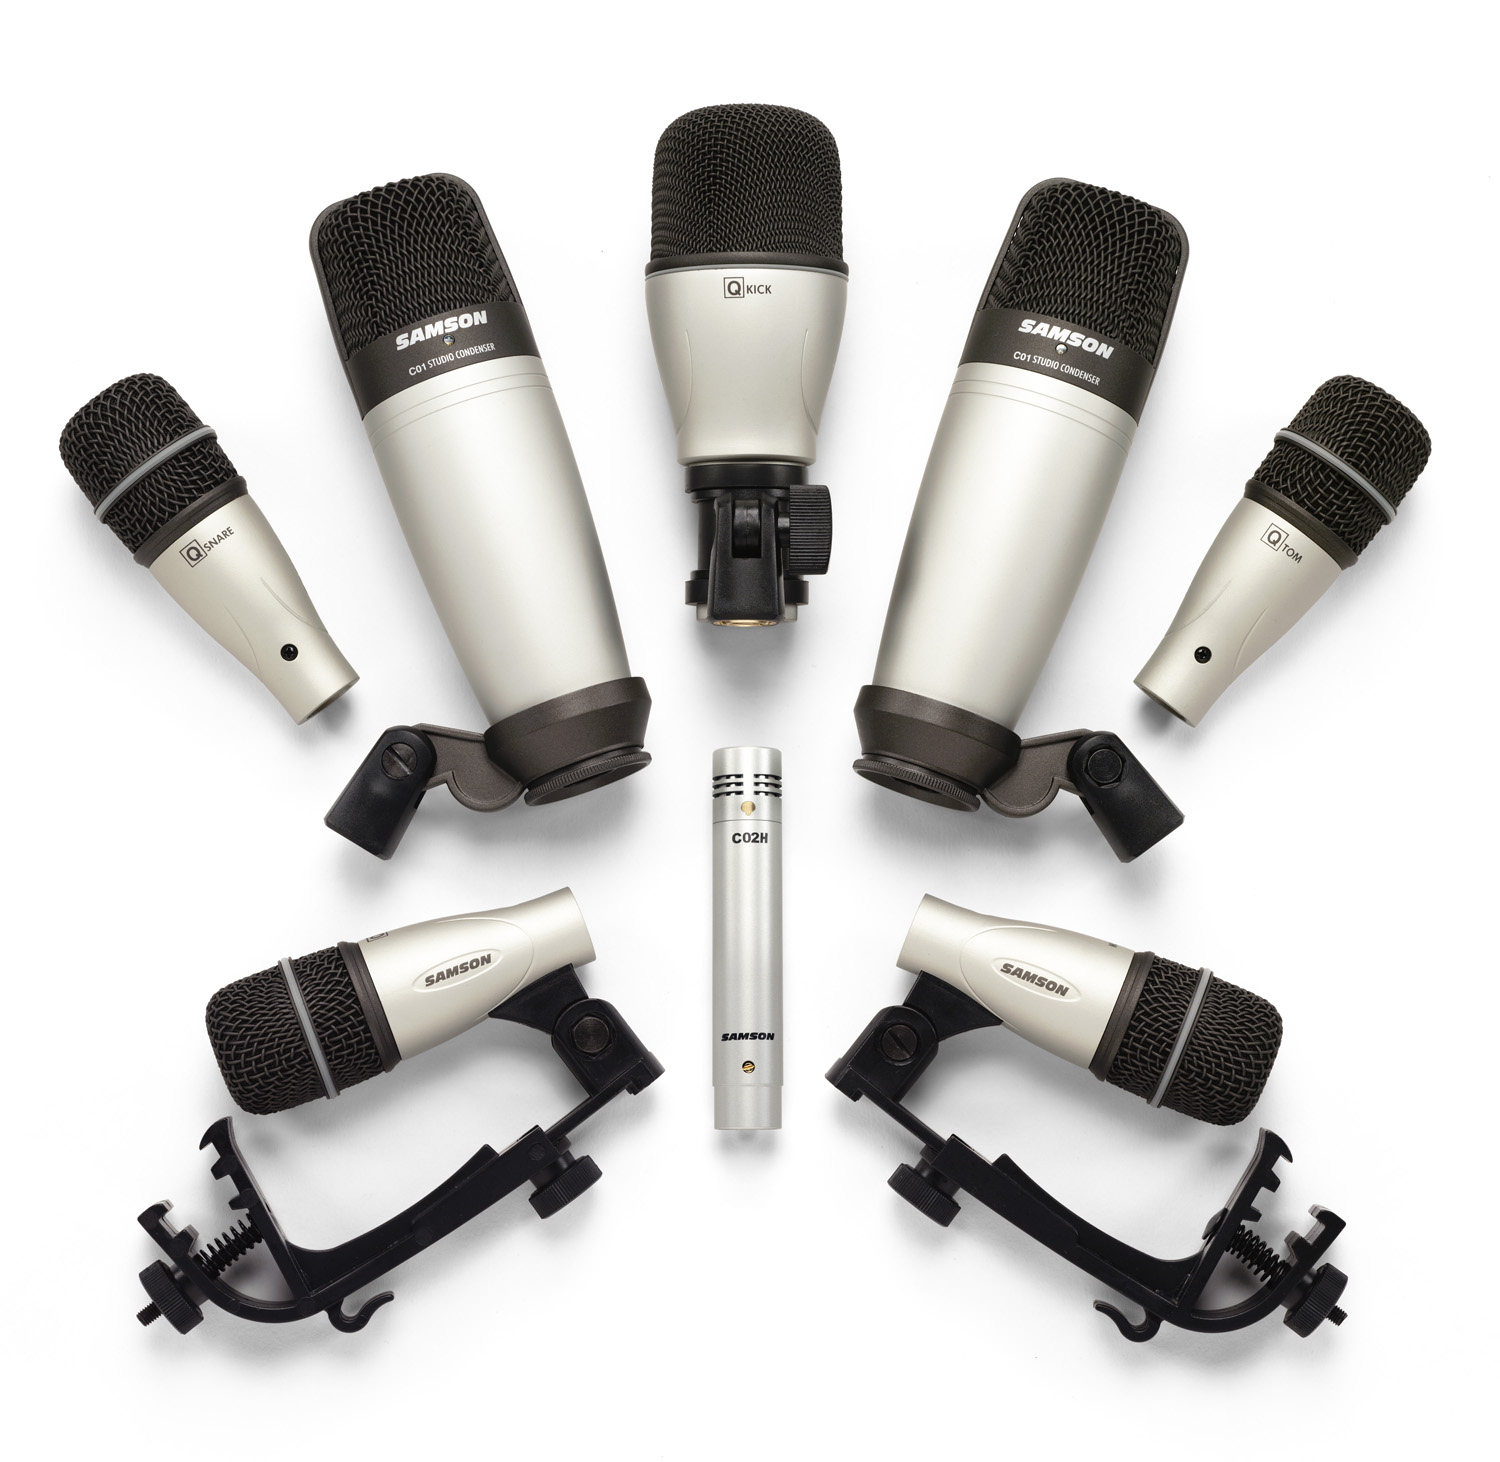 SAMSON 8KIT MICROPHONE